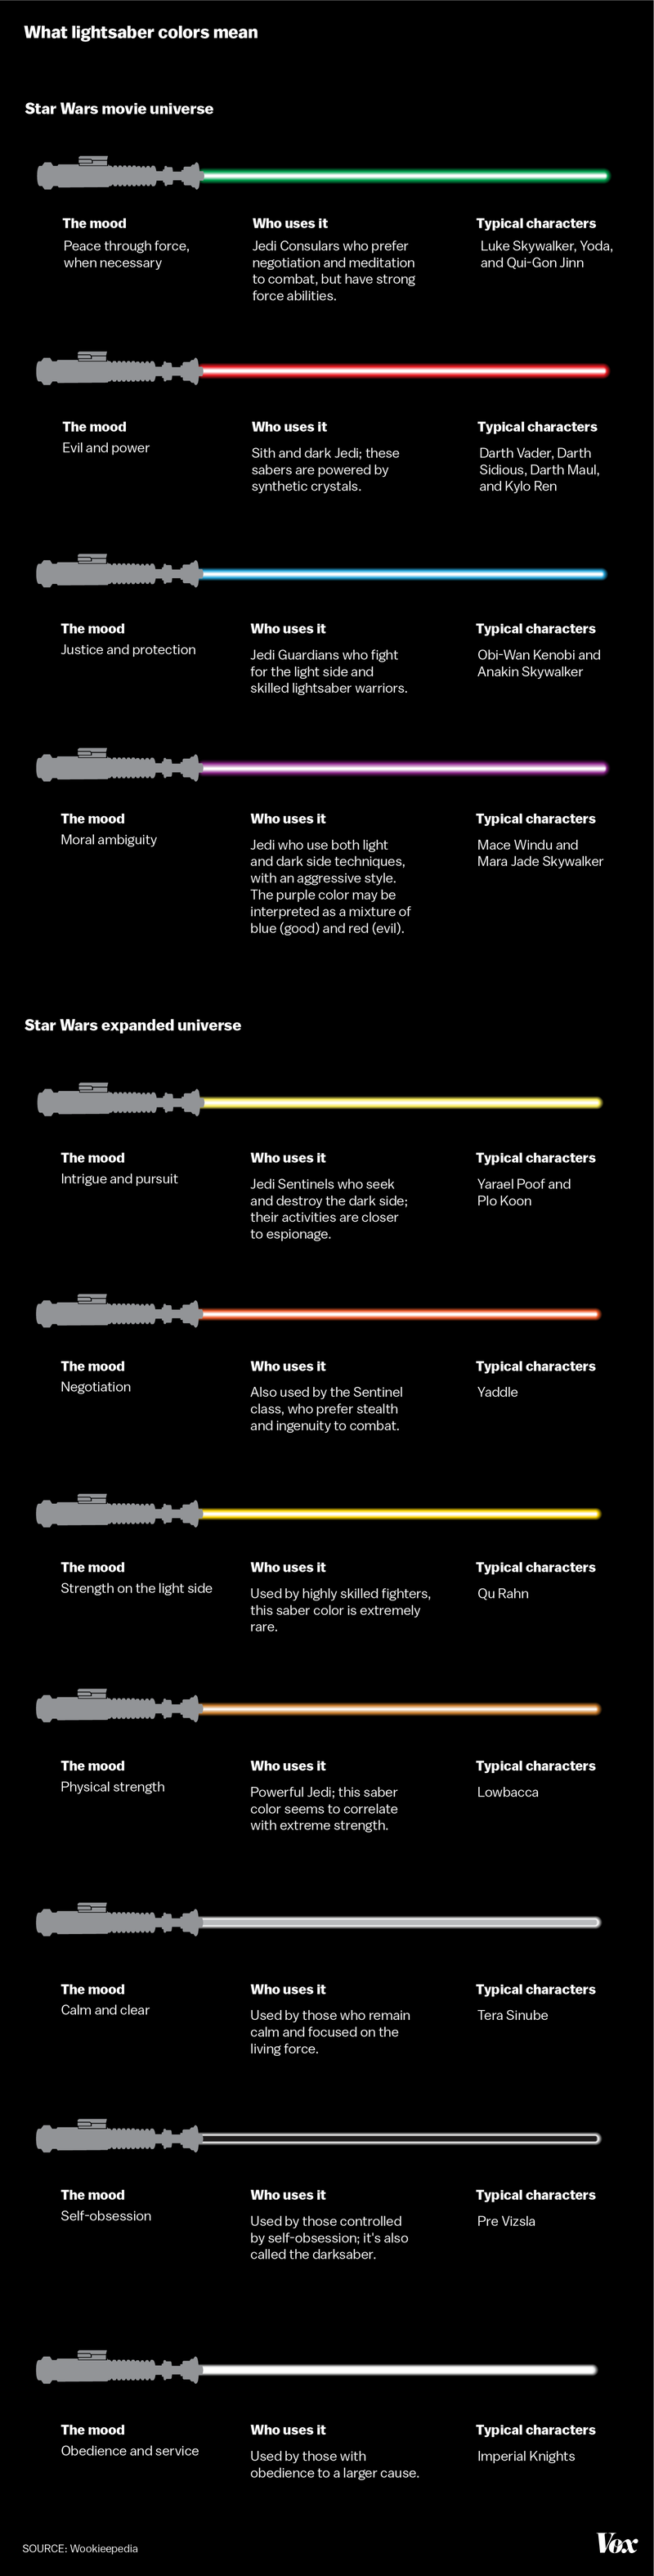 Star Wars lightsaber colors, explained   Great Graphics